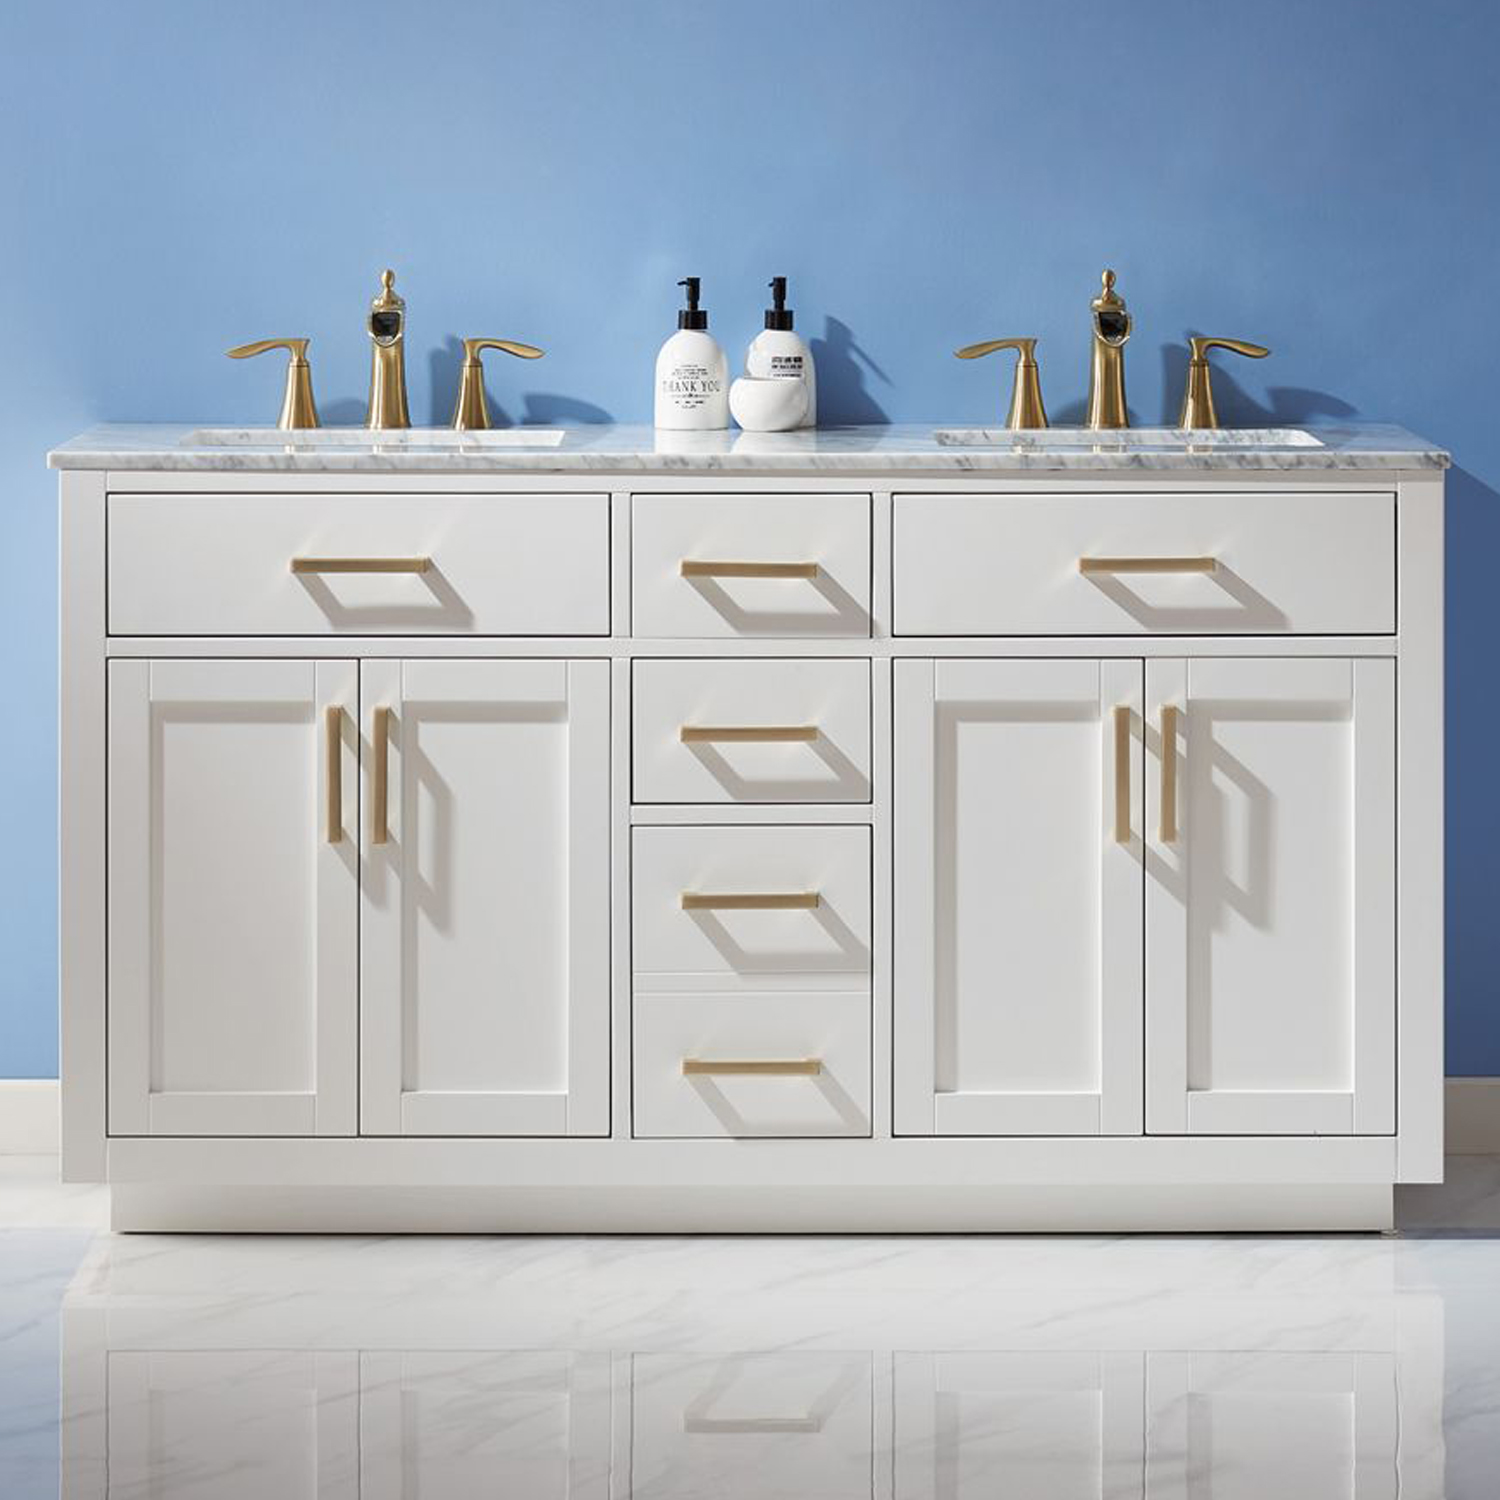 "Issac Edwards Collection 60"" Double Bathroom Vanity Set in White and Carrara White Marble Countertop without Mirror"